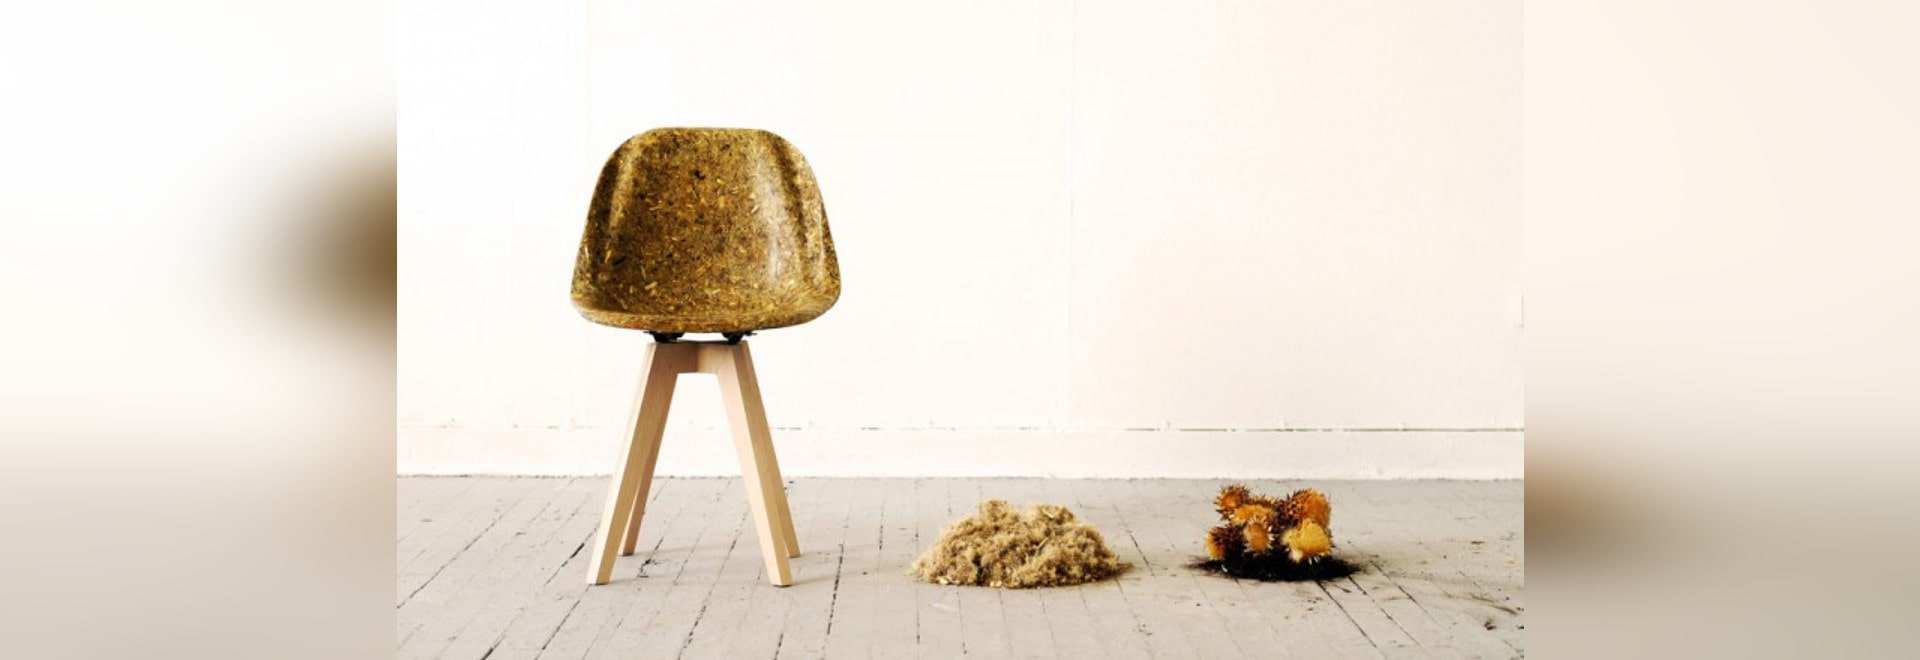 ALL NATURAL: INNOVATIVE ECO-COMPOSITES FOR YOUR SEATING PLEASURE